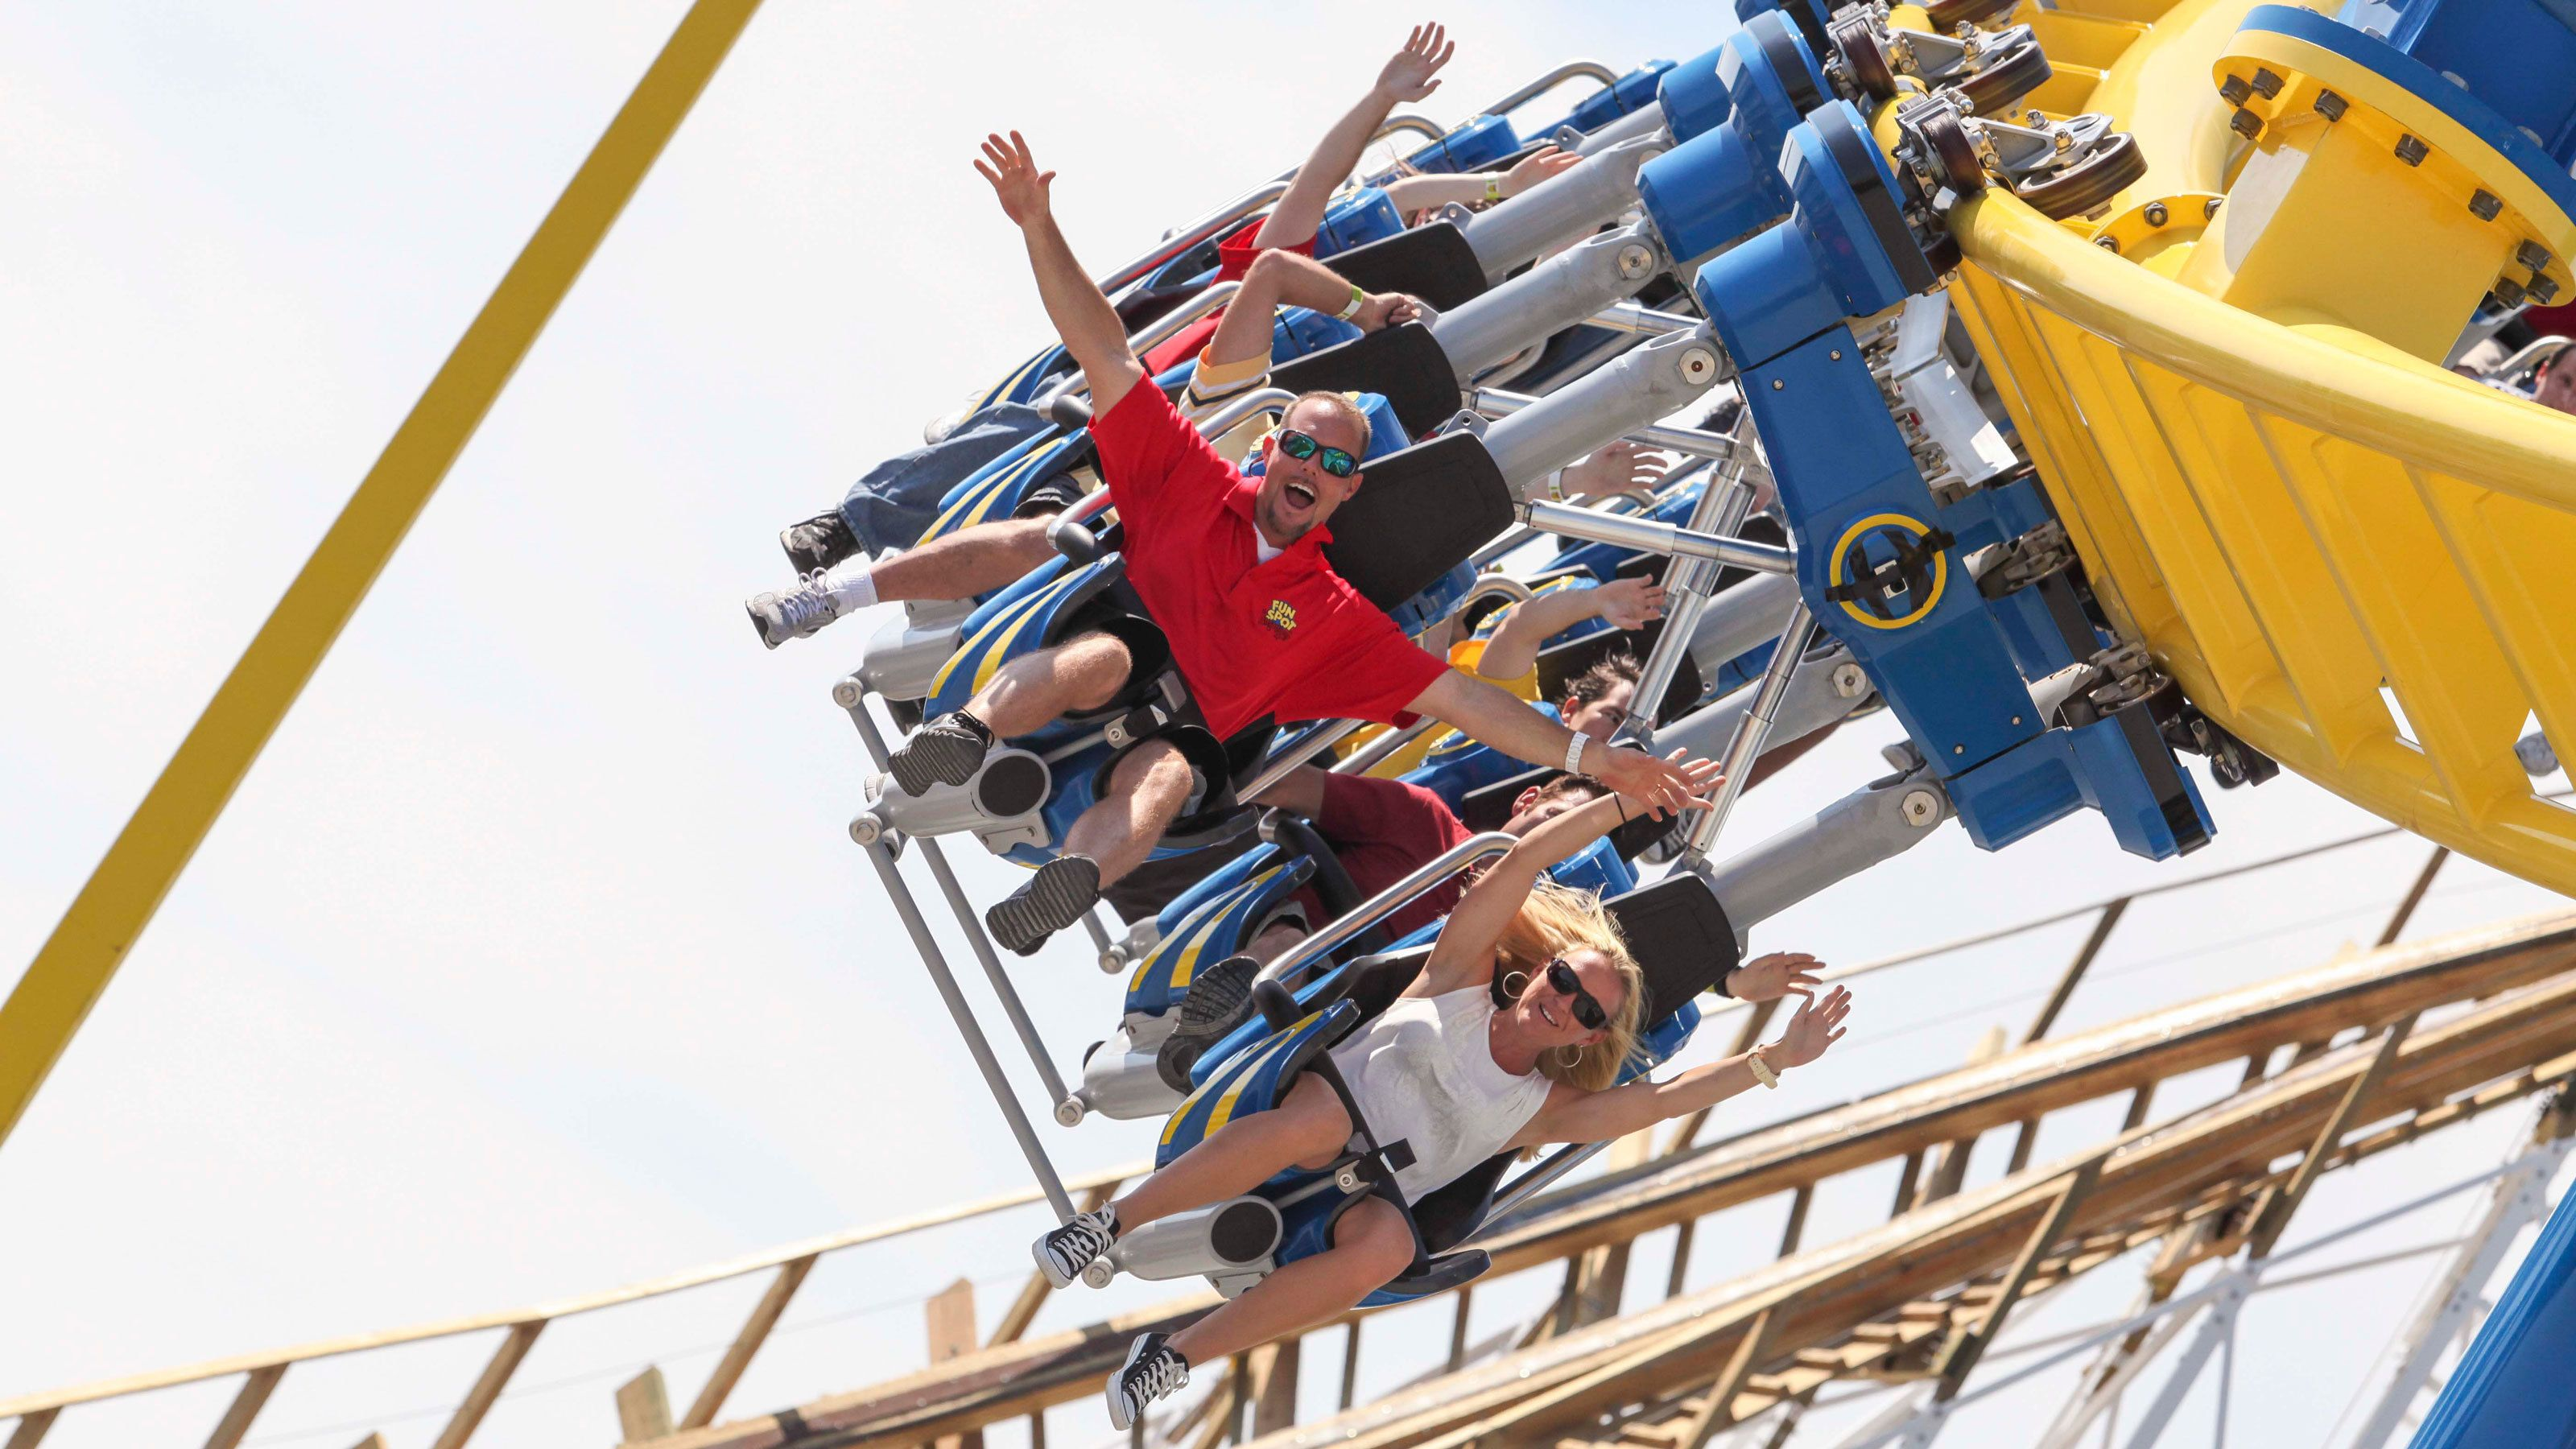 Inverted roller coaster with riders at Fun Spot America in Orlando.